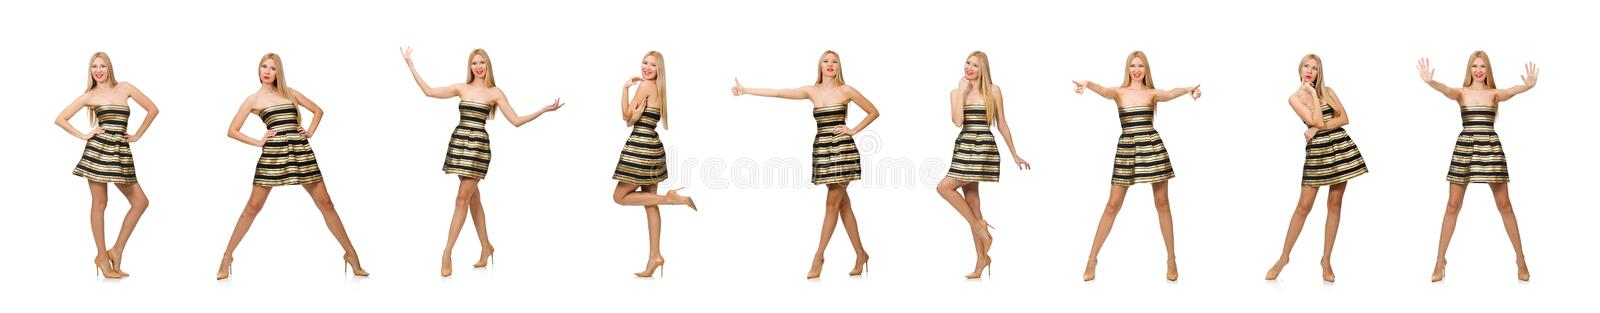 Beautiful girl in gold and black dress isolated on white royalty free stock image